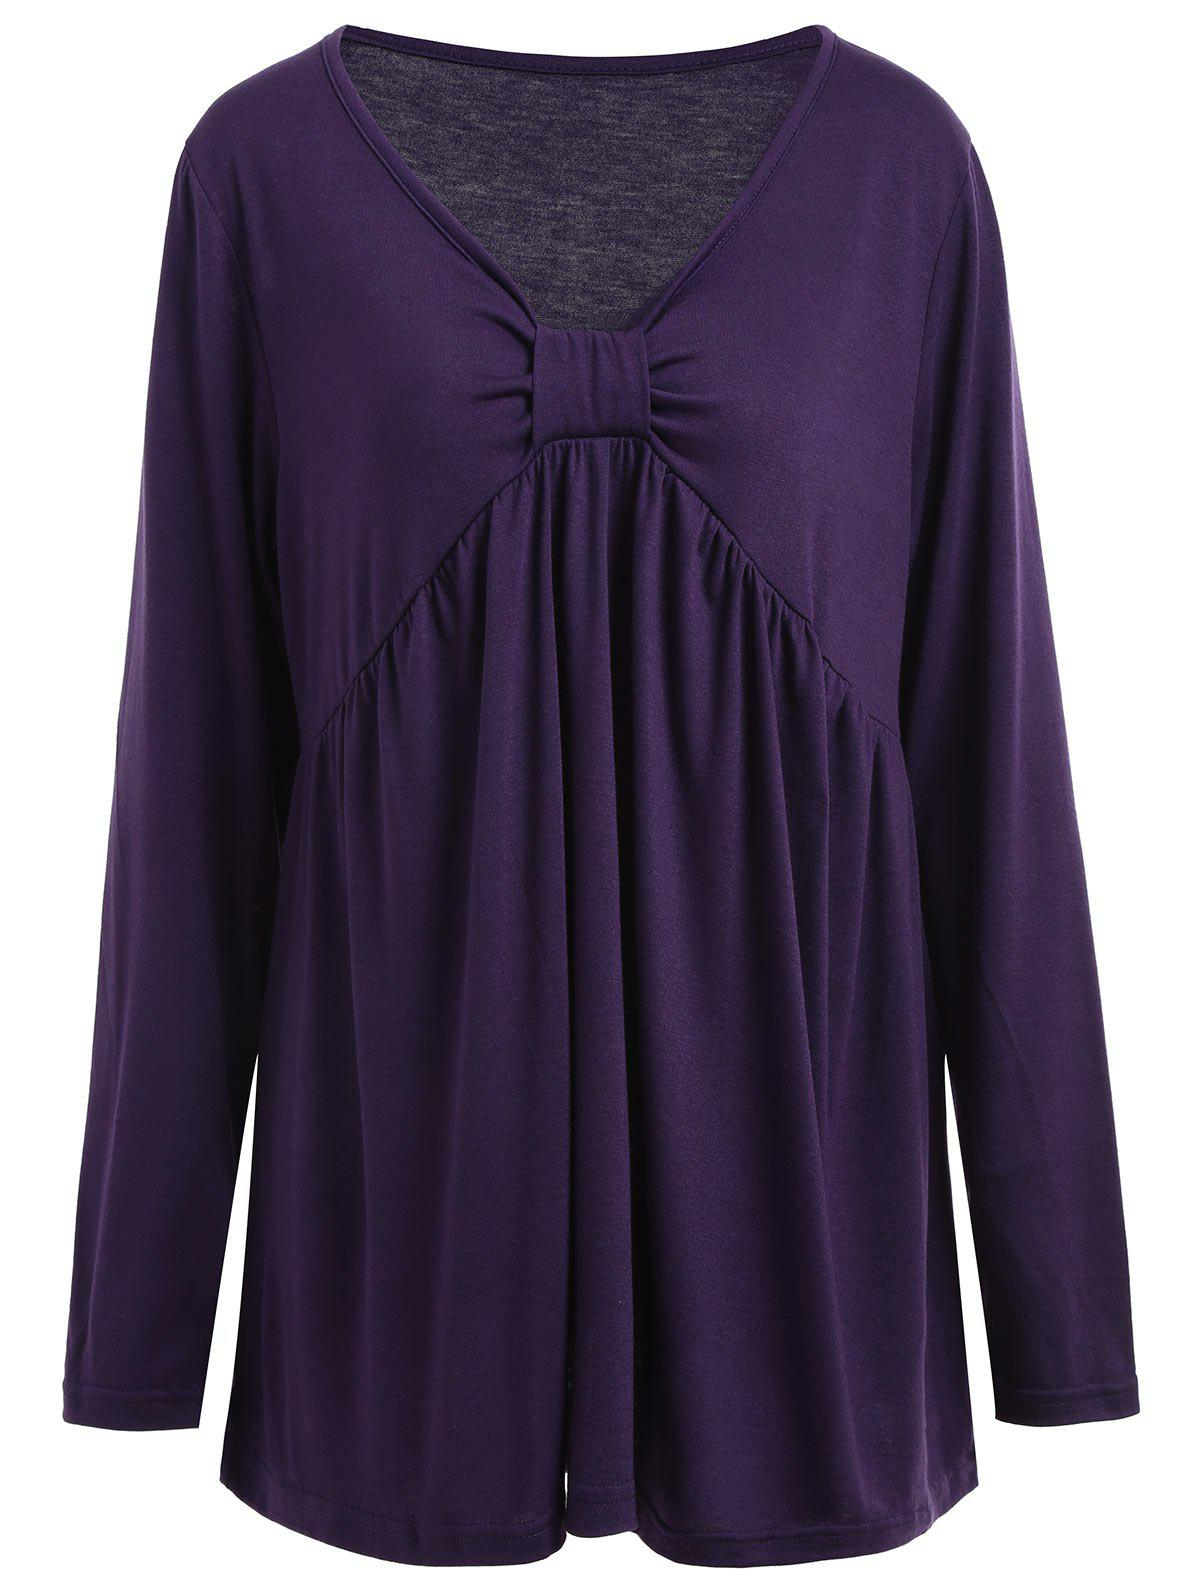 Plus Size Empire Waist Bowknot TeeWOMEN<br><br>Size: 5XL; Color: DEEP PURPLE; Material: Cotton,Polyester; Shirt Length: Regular; Sleeve Length: Full; Collar: V-Neck; Style: Casual; Season: Fall; Embellishment: Bowknot; Pattern Type: Solid; Weight: 0.2850kg; Package Contents: 1 x T-shirt;